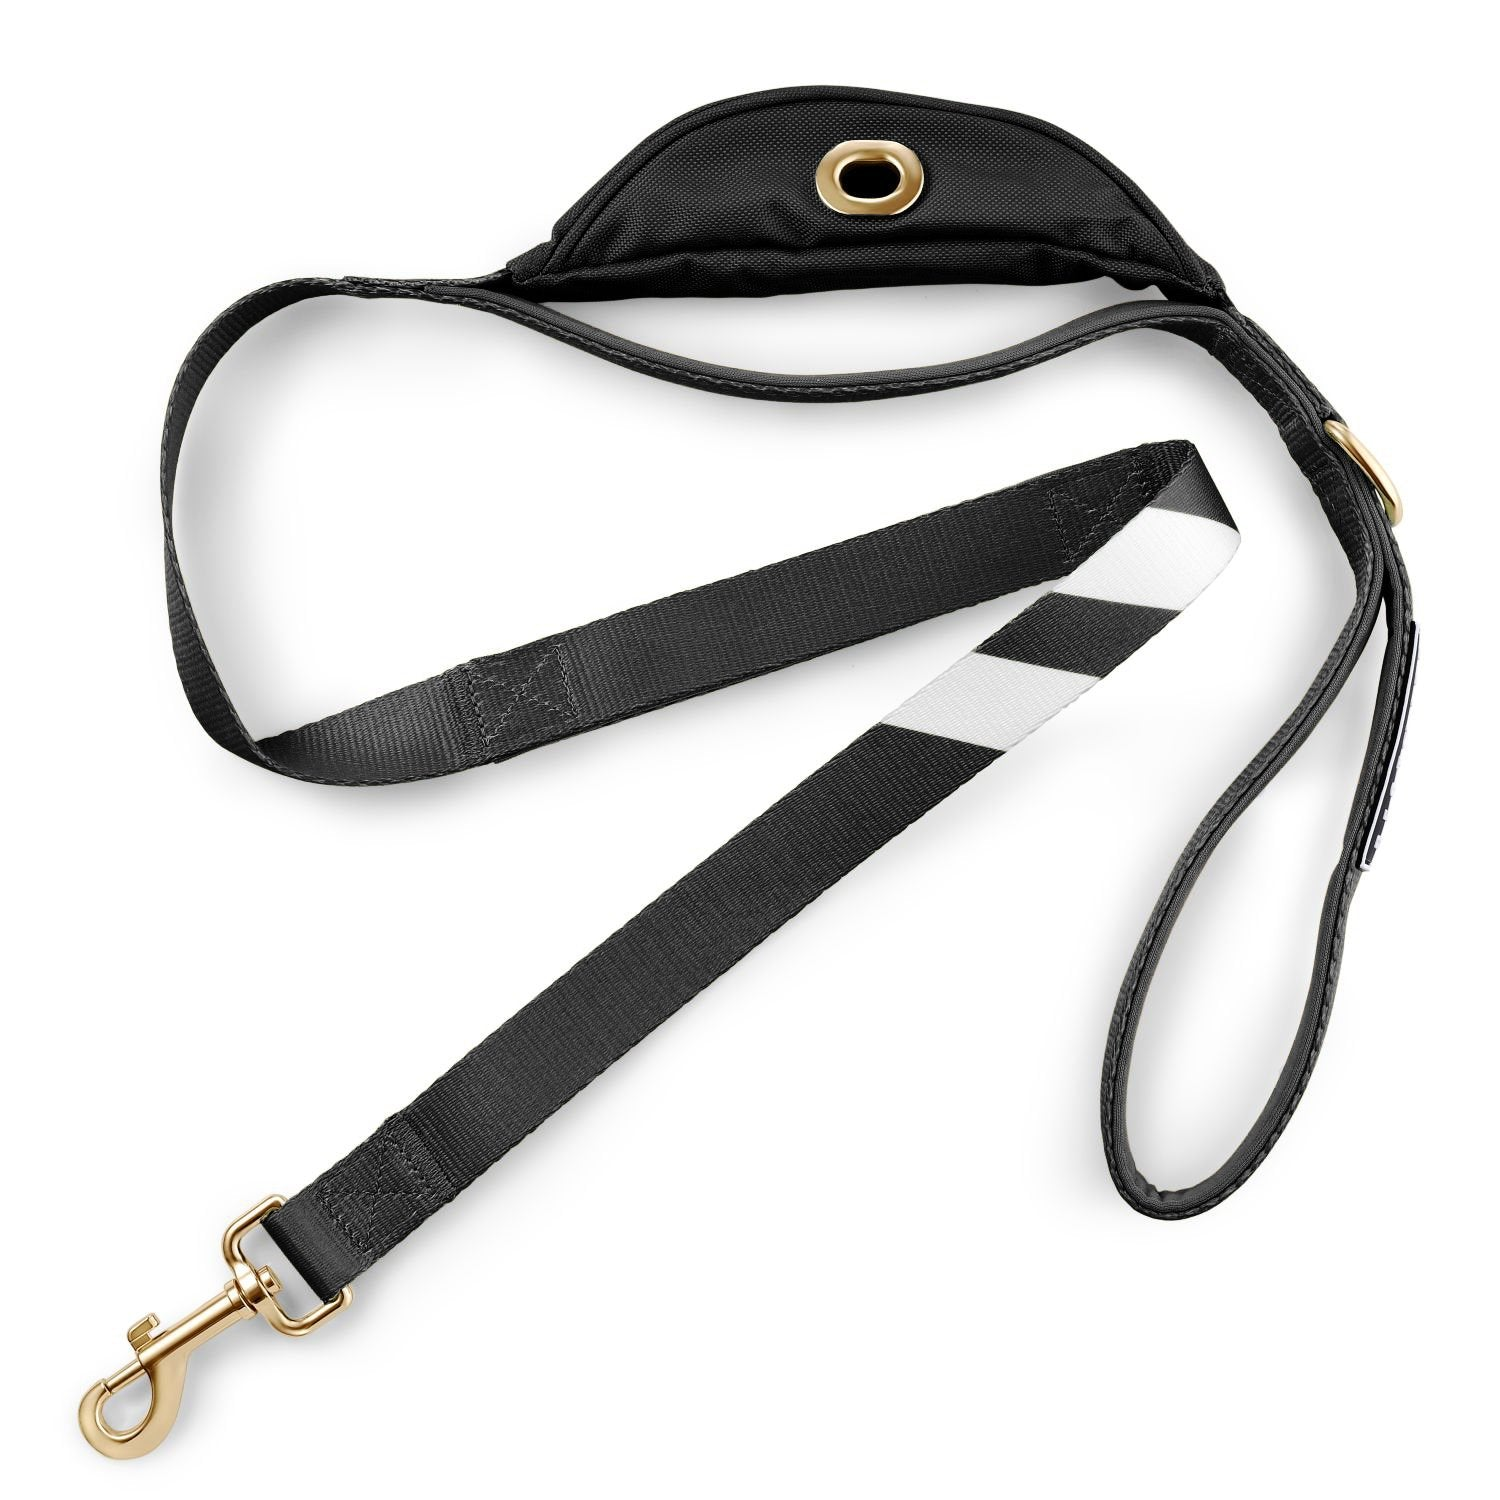 Midnight Black - Cargo Leash leash bestlifeleashes